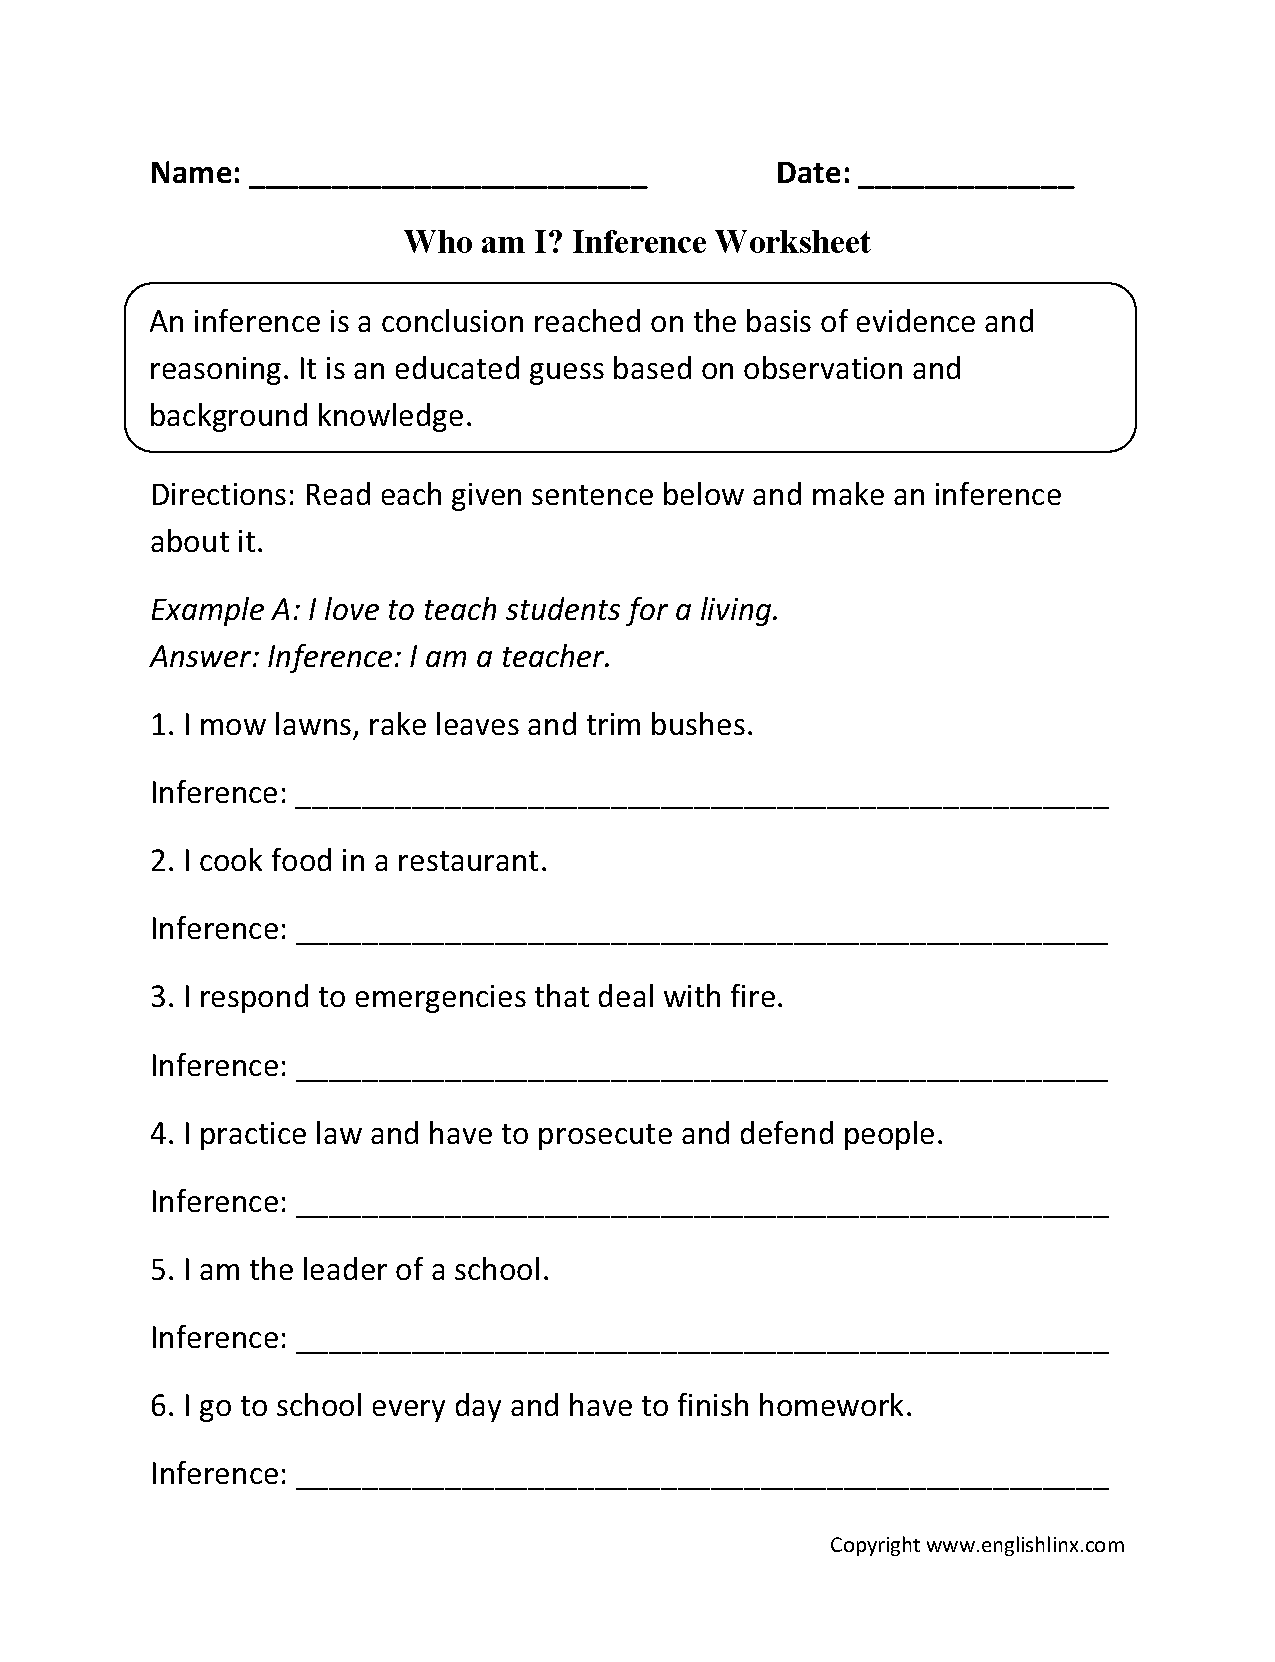 worksheet Observation And Inference Worksheet inference worksheets who am i worksheets